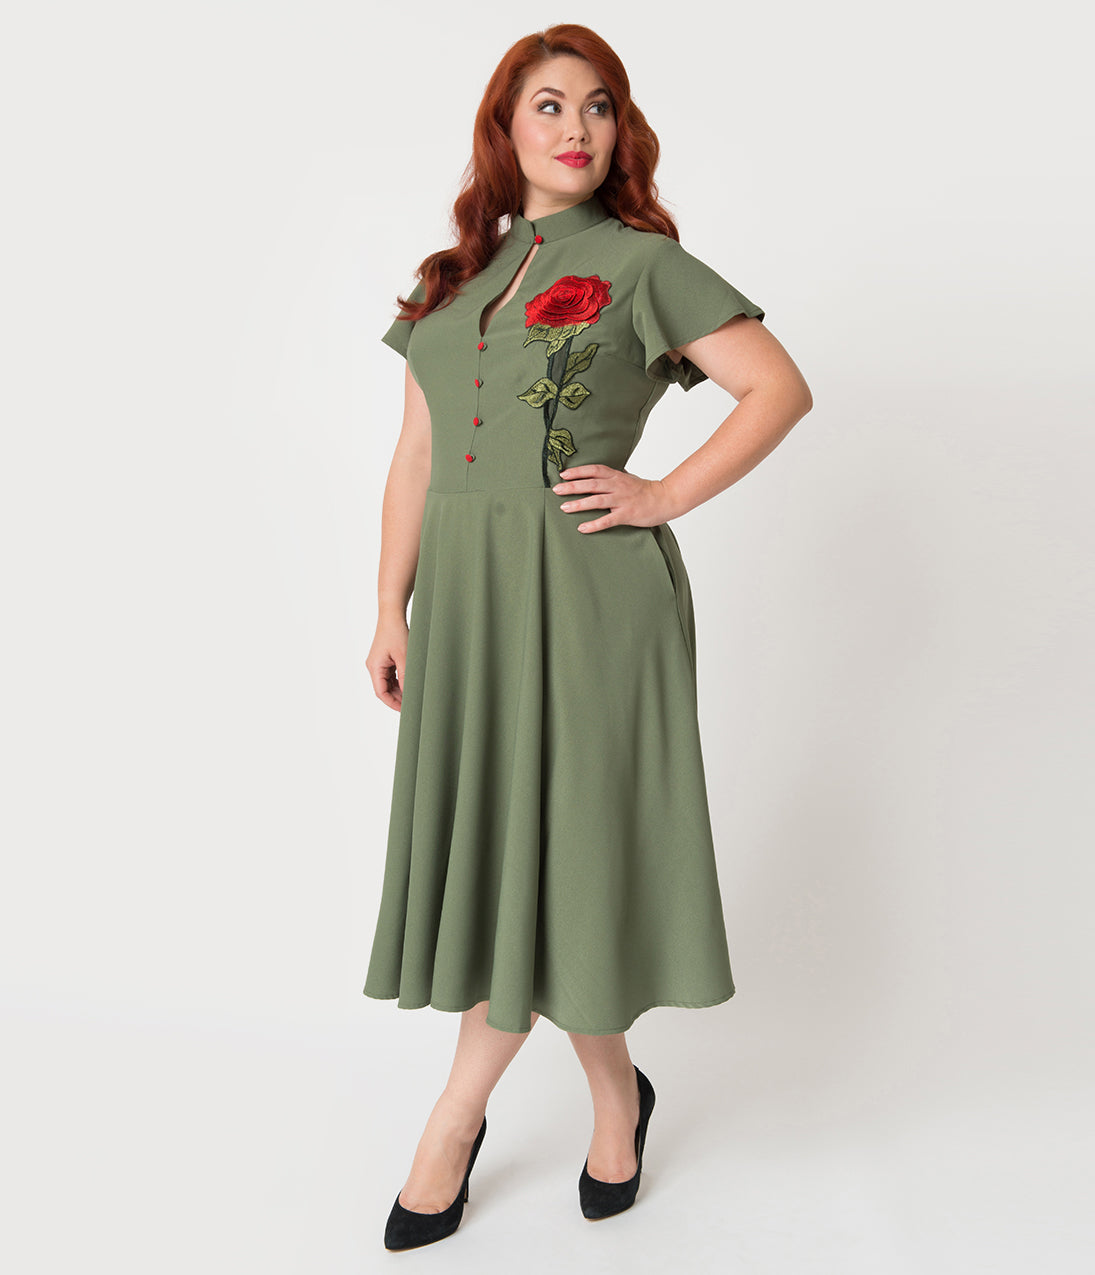 1950s Plus Size Dresses, Clothing and Costumes Unique Vintage Plus Size 1950S Olive Green  Embroidered Red Rose Baltimore Swing Dress $98.00 AT vintagedancer.com